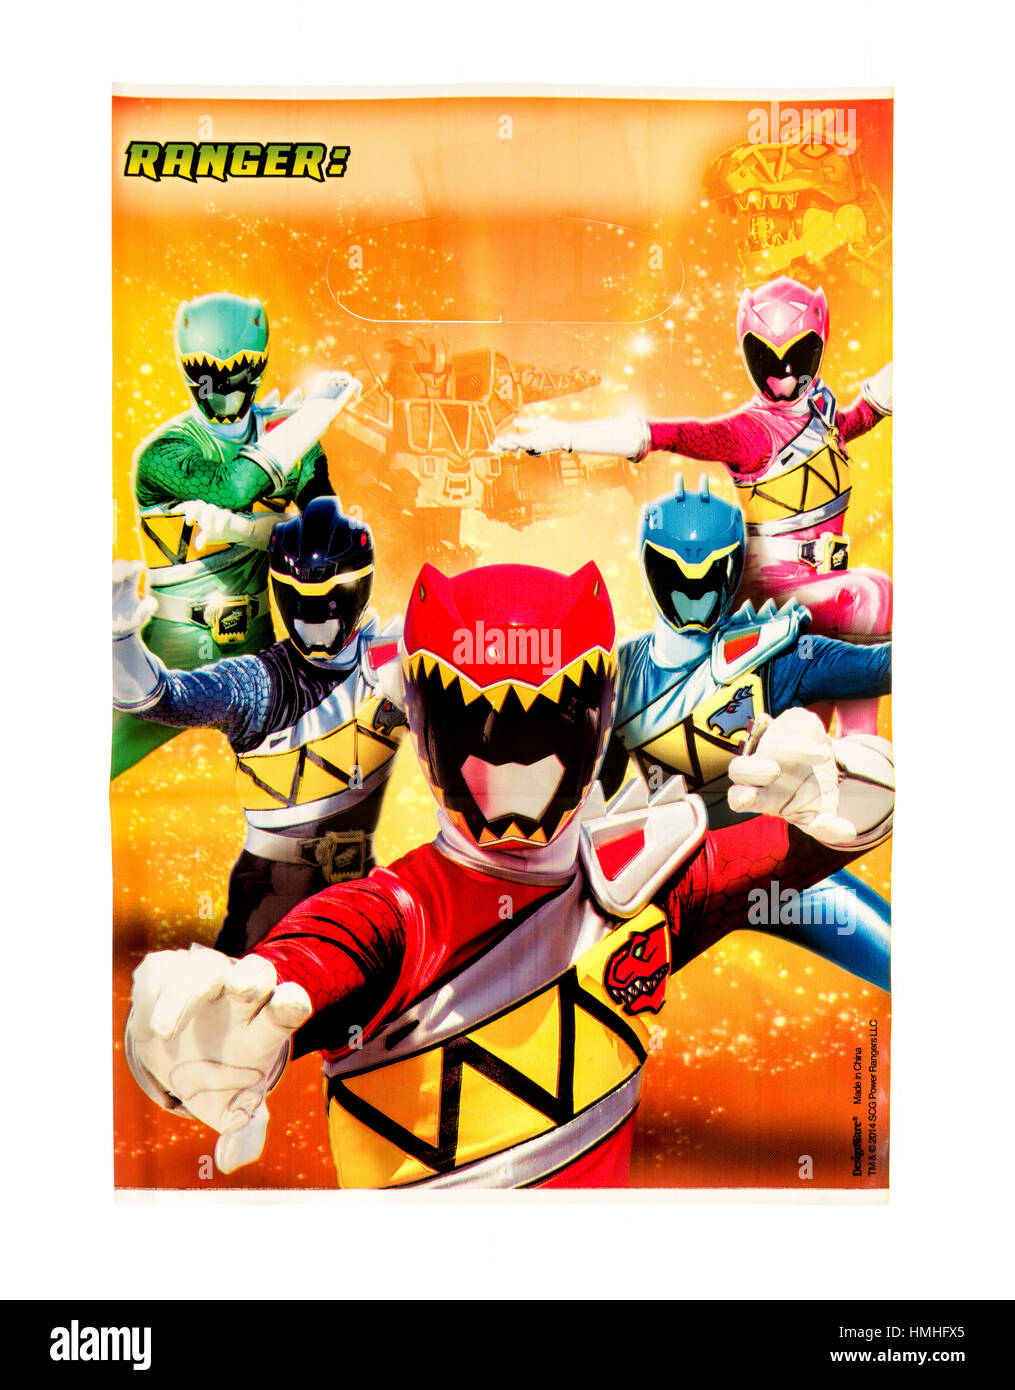 Winneconne, WI -29 January 2017:   Power Rangers loot bag on an isolated background. - Stock Image